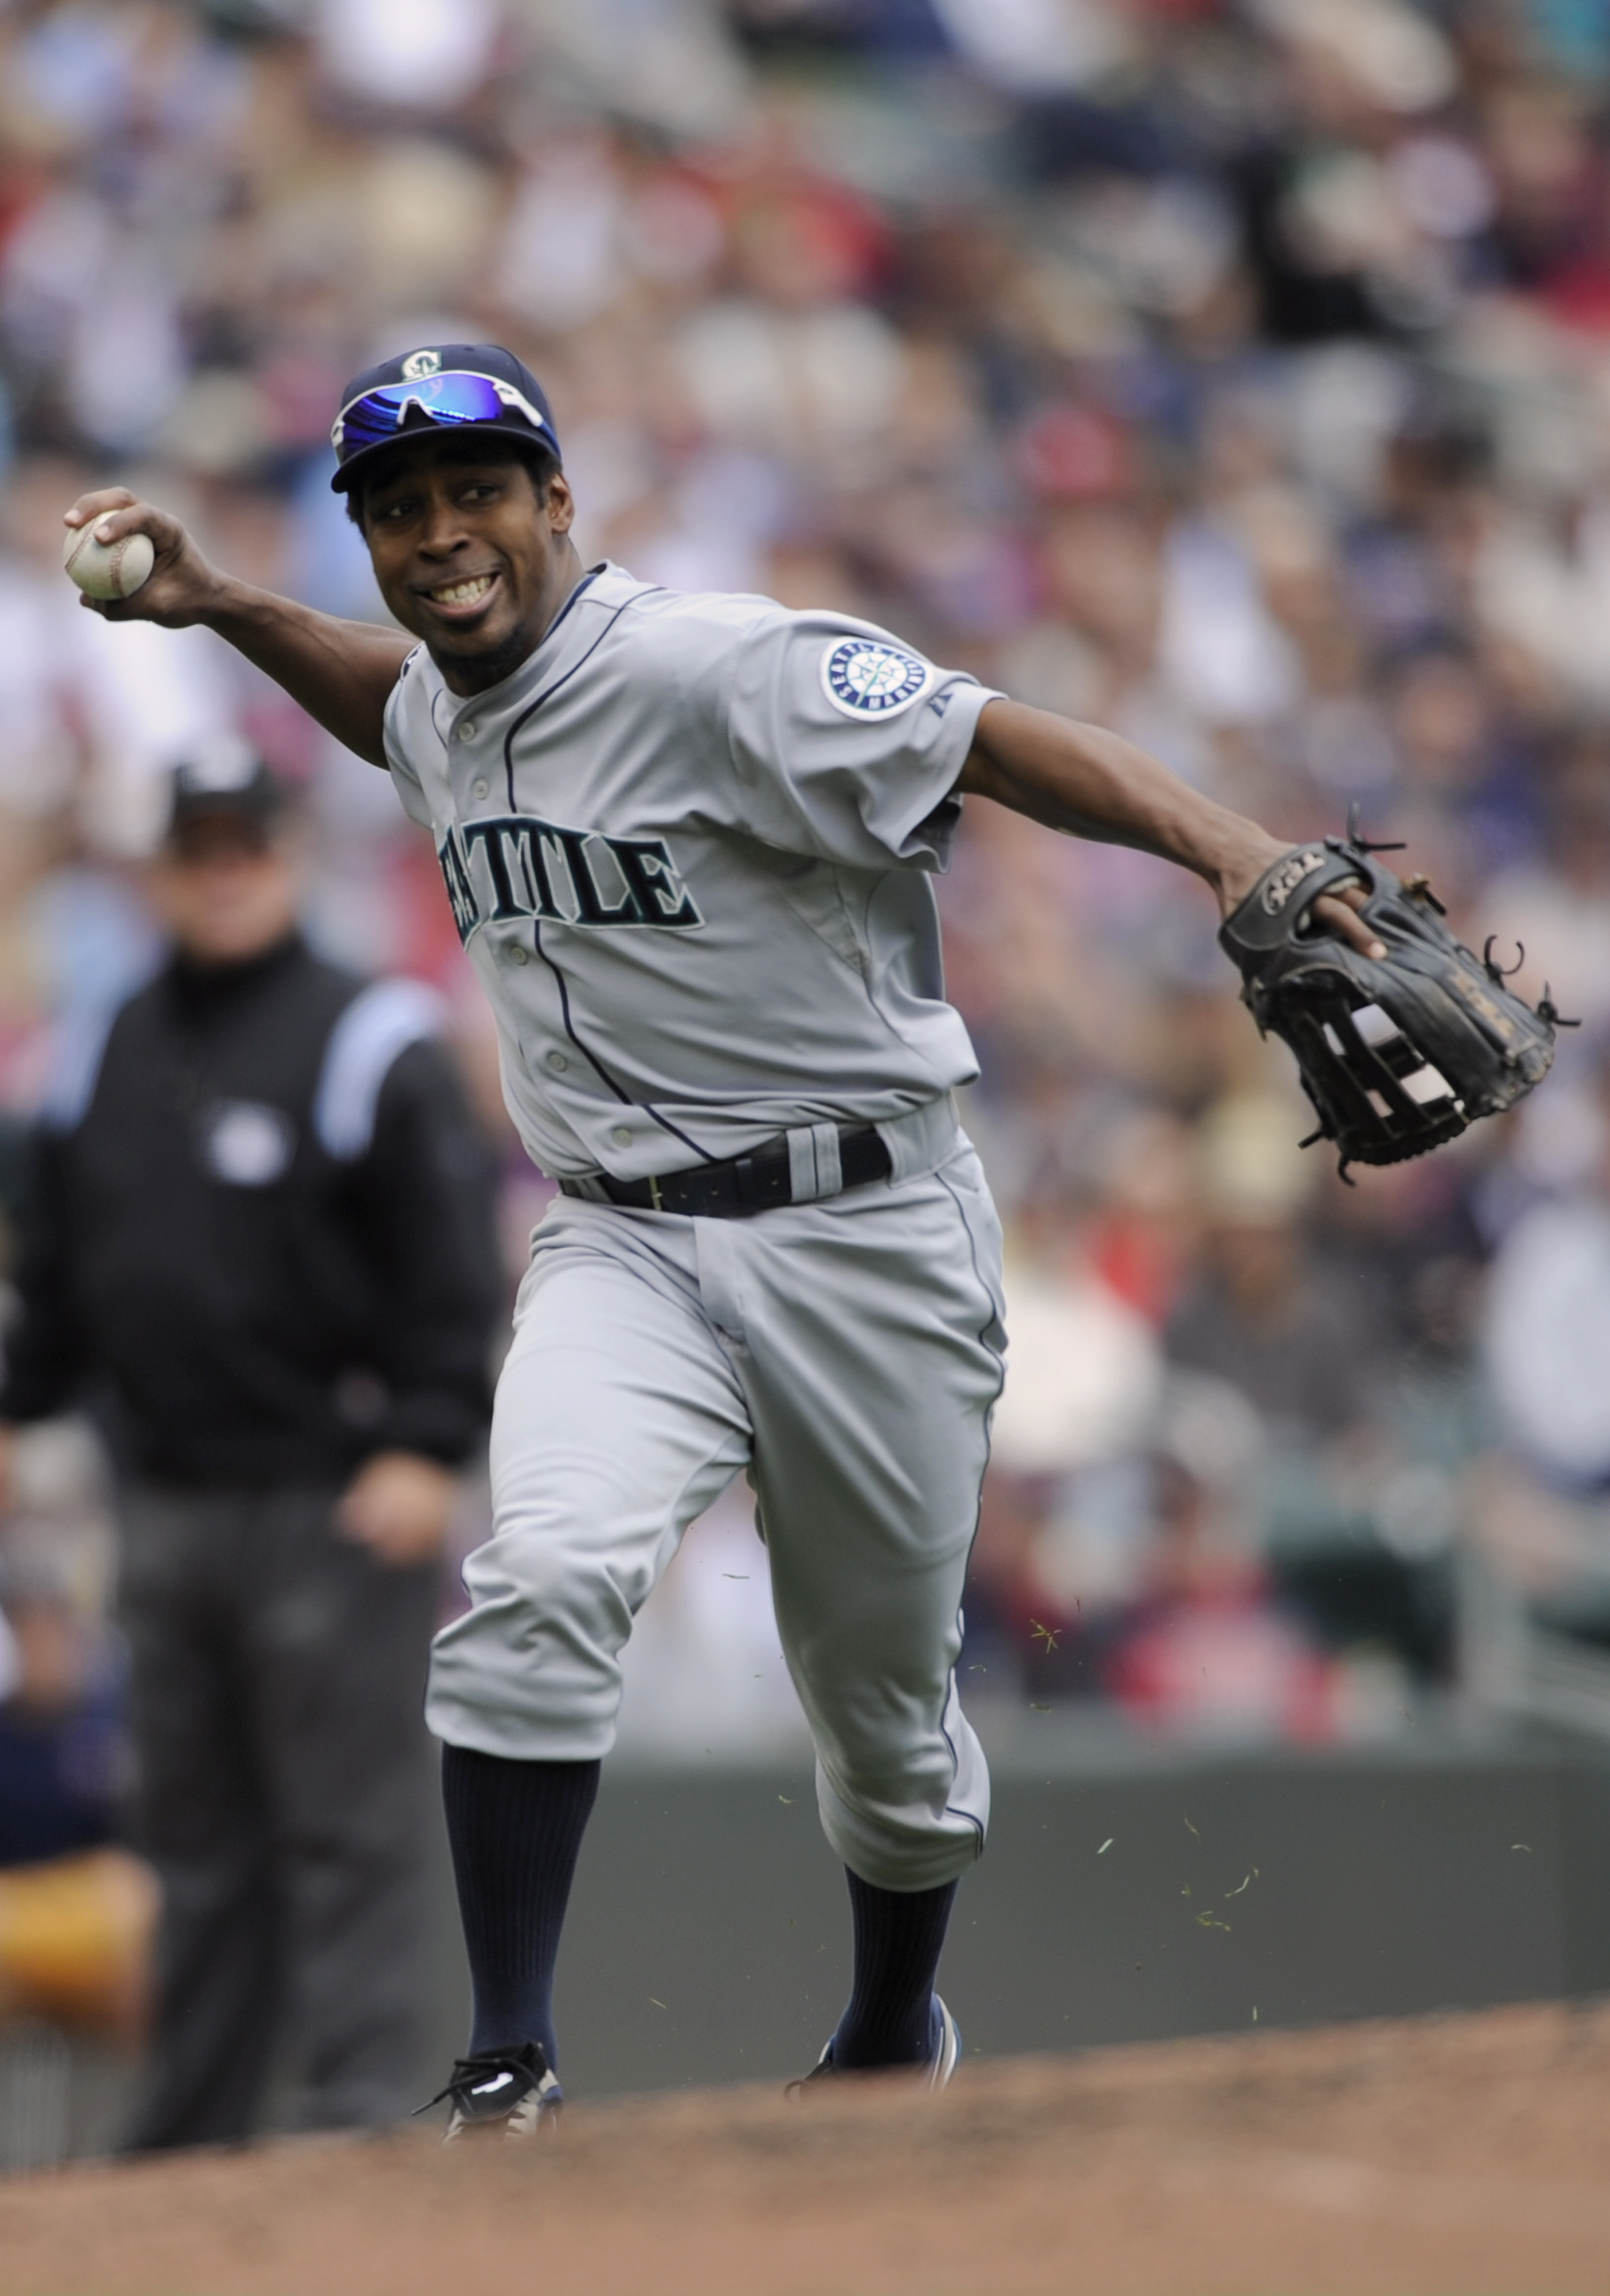 MINNEAPOLIS, MN - MAY 25: Chone Figgins #9 of the Seattle Mariners throws to first base after fielding the ball hit into play by the Minnesota Twins during the second inning of their game on May 25, 2011 at Target Field in Minneapolis, Minnesota. (Photo b